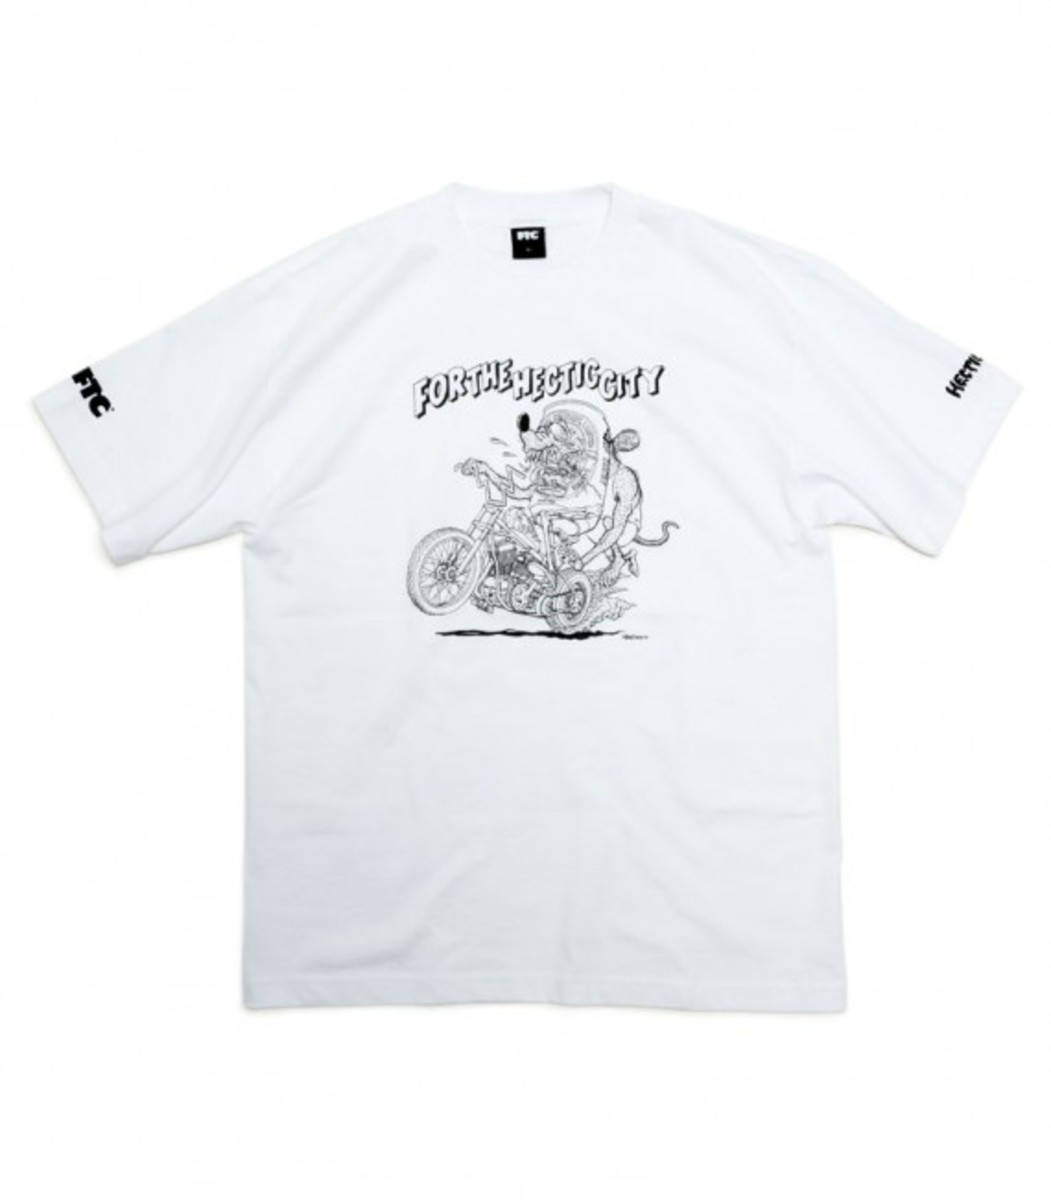 For The Hectic City T-Shirt White